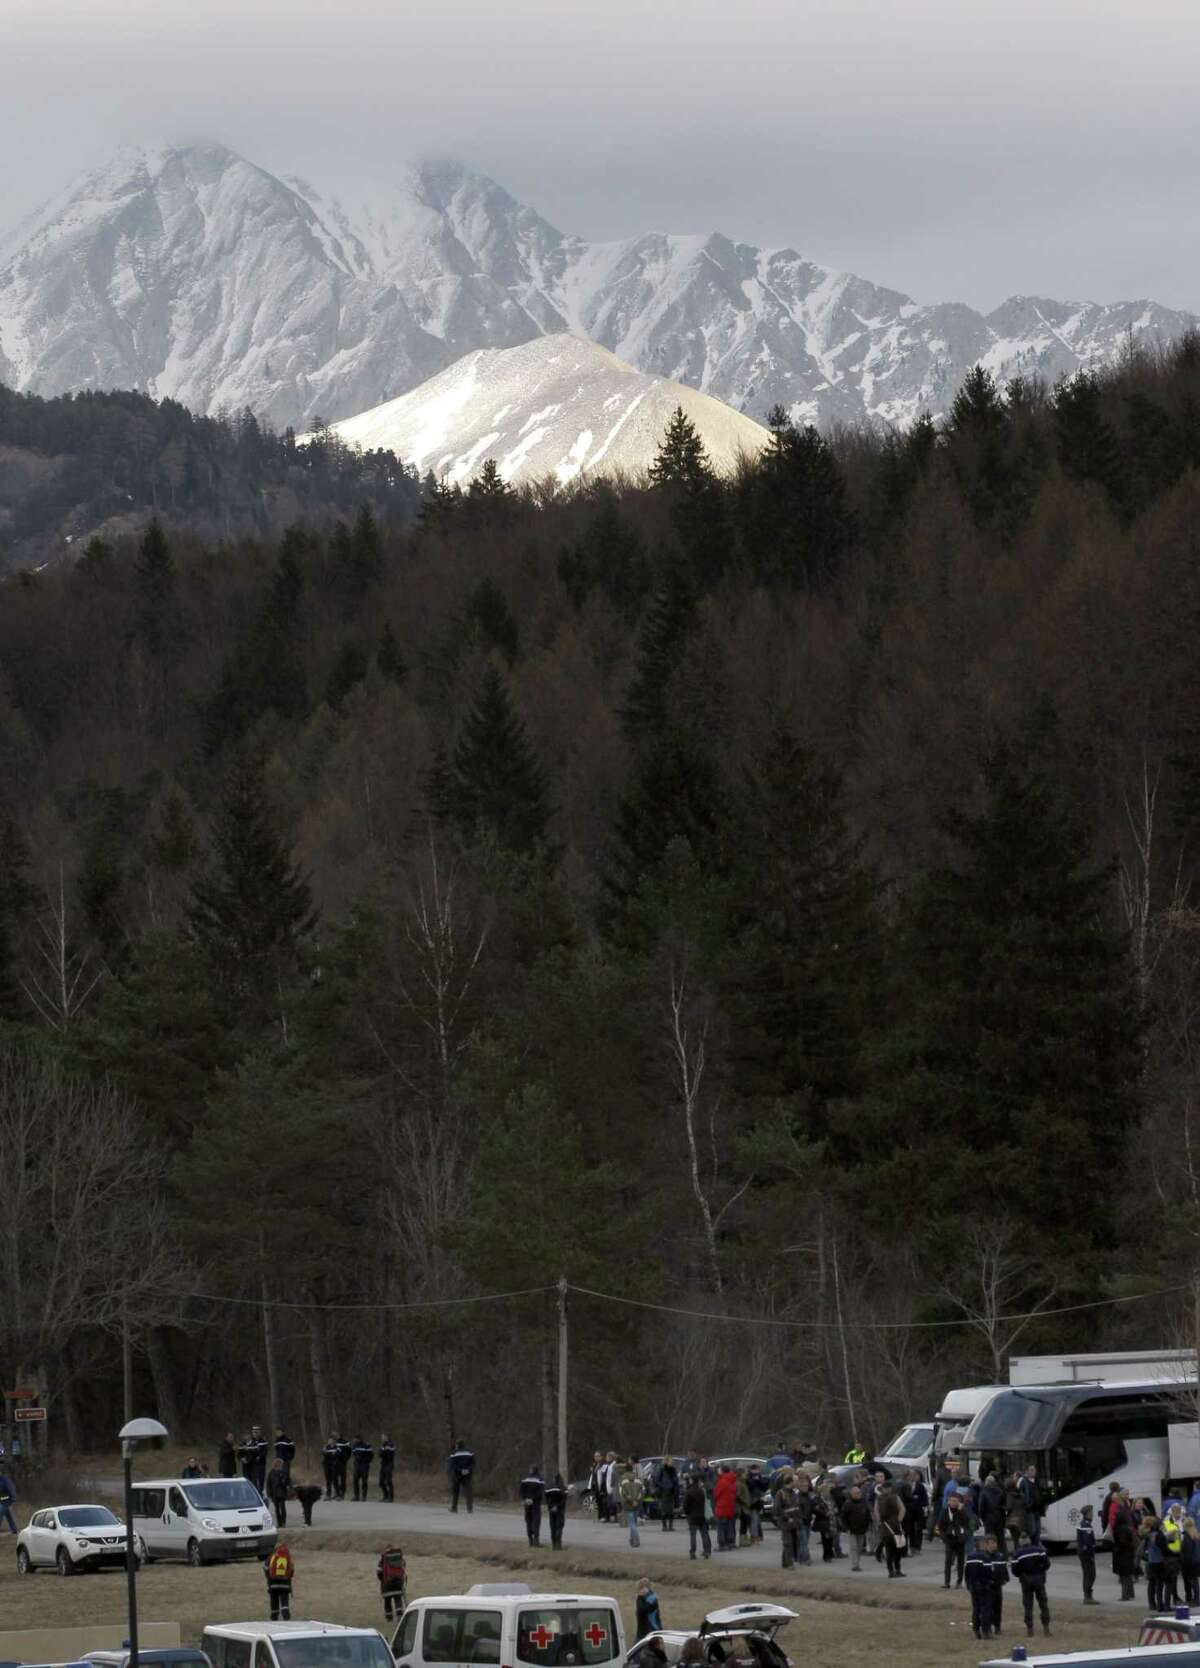 Family members of people involved in Germanwings jetliner that crashed on Tuesday in the French Alps arrive for a gathering in Le Vernet, France Thursday, March 26, 2015. The co-pilot of the Germanwings jet barricaded himself in the cockpit and ìintentionallyî rammed the plane full speed into the French Alps, ignoring the captainís frantic pounding on the cockpit door and the screams of terror from passengers, a prosecutor said Thursday. In a split second, he killed all 150 people aboard the plane. (AP Photo/Christophe Ena)